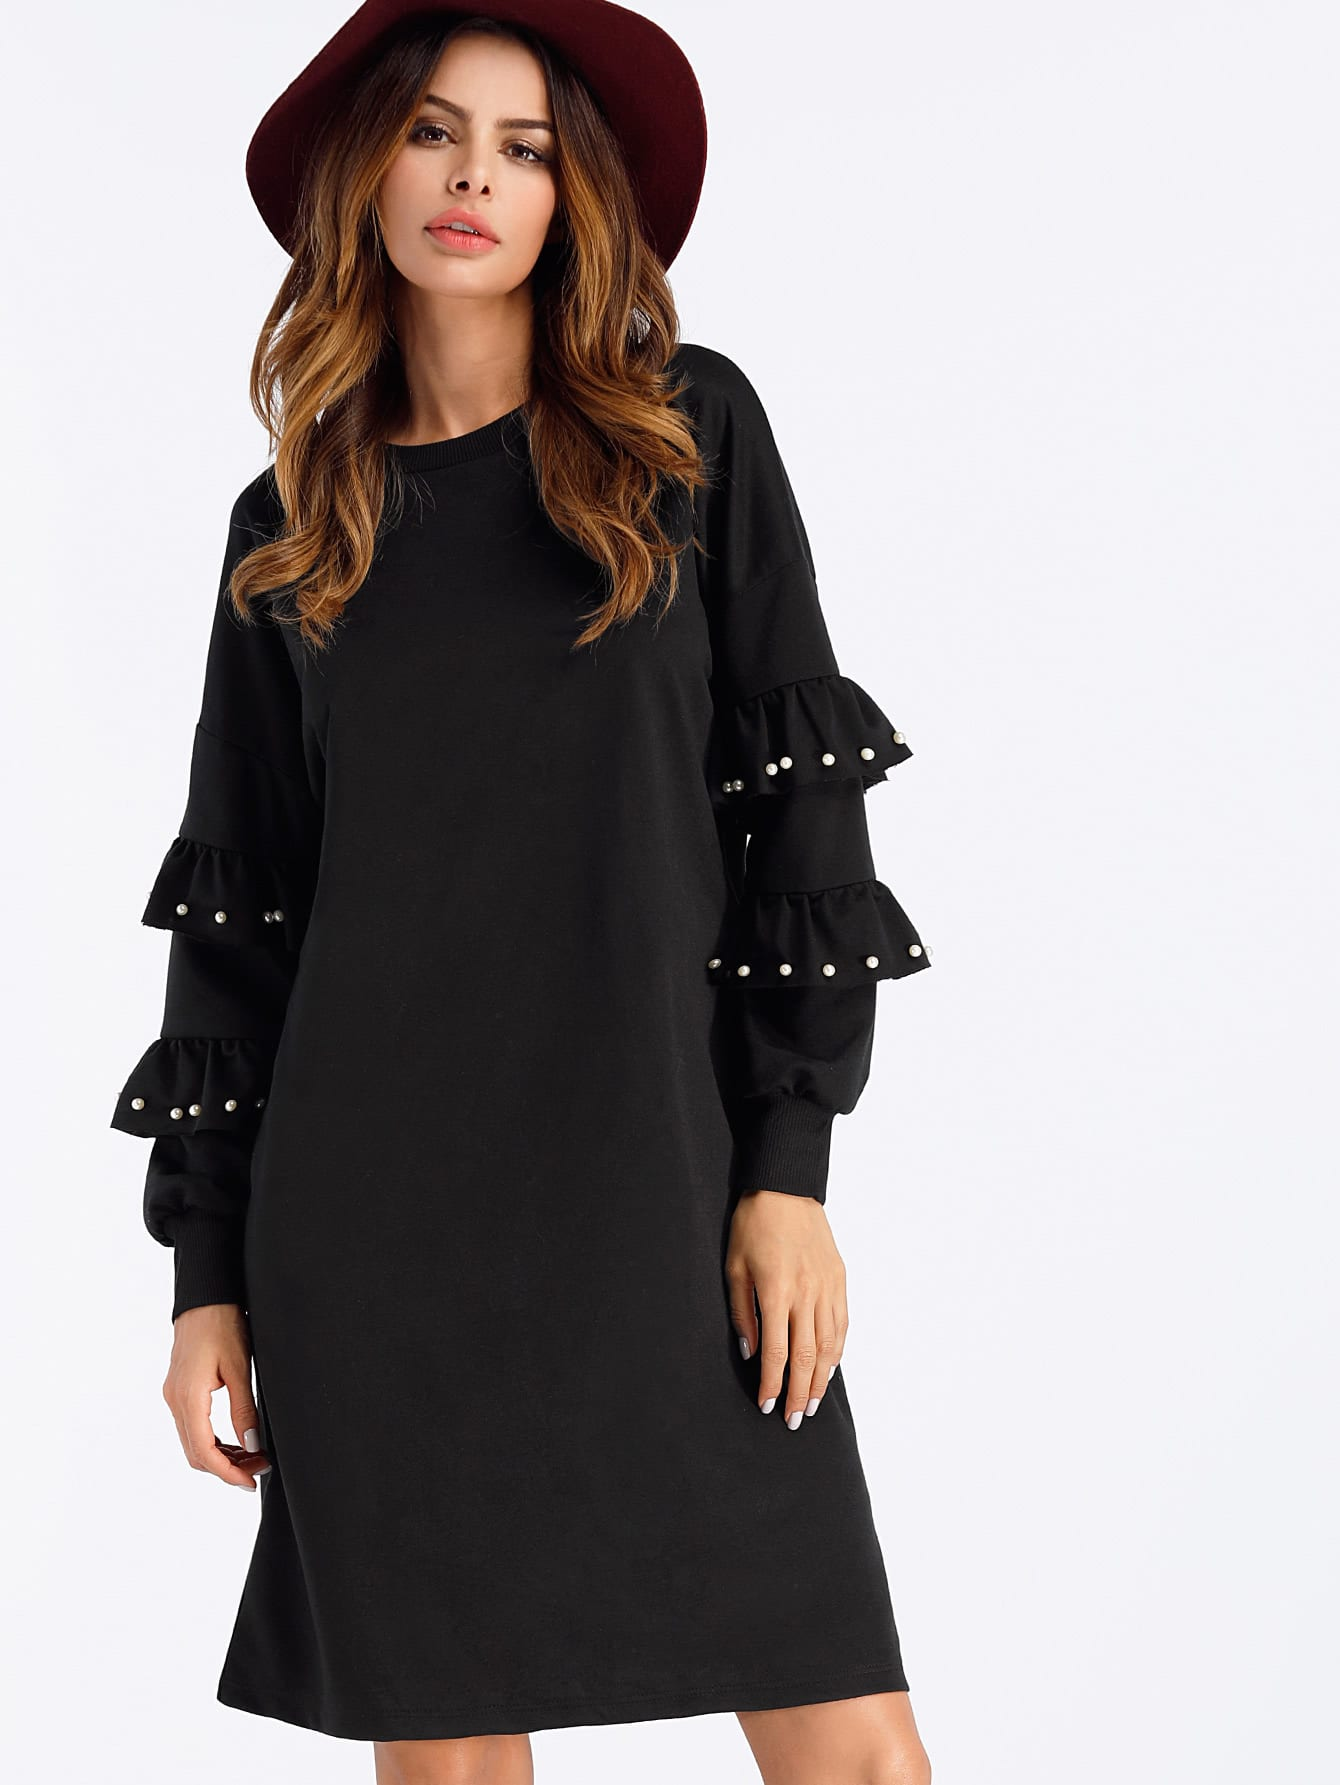 Frill Layered Pearl Detail Sweatshirt Dress pearl detail frill off shoulder dress